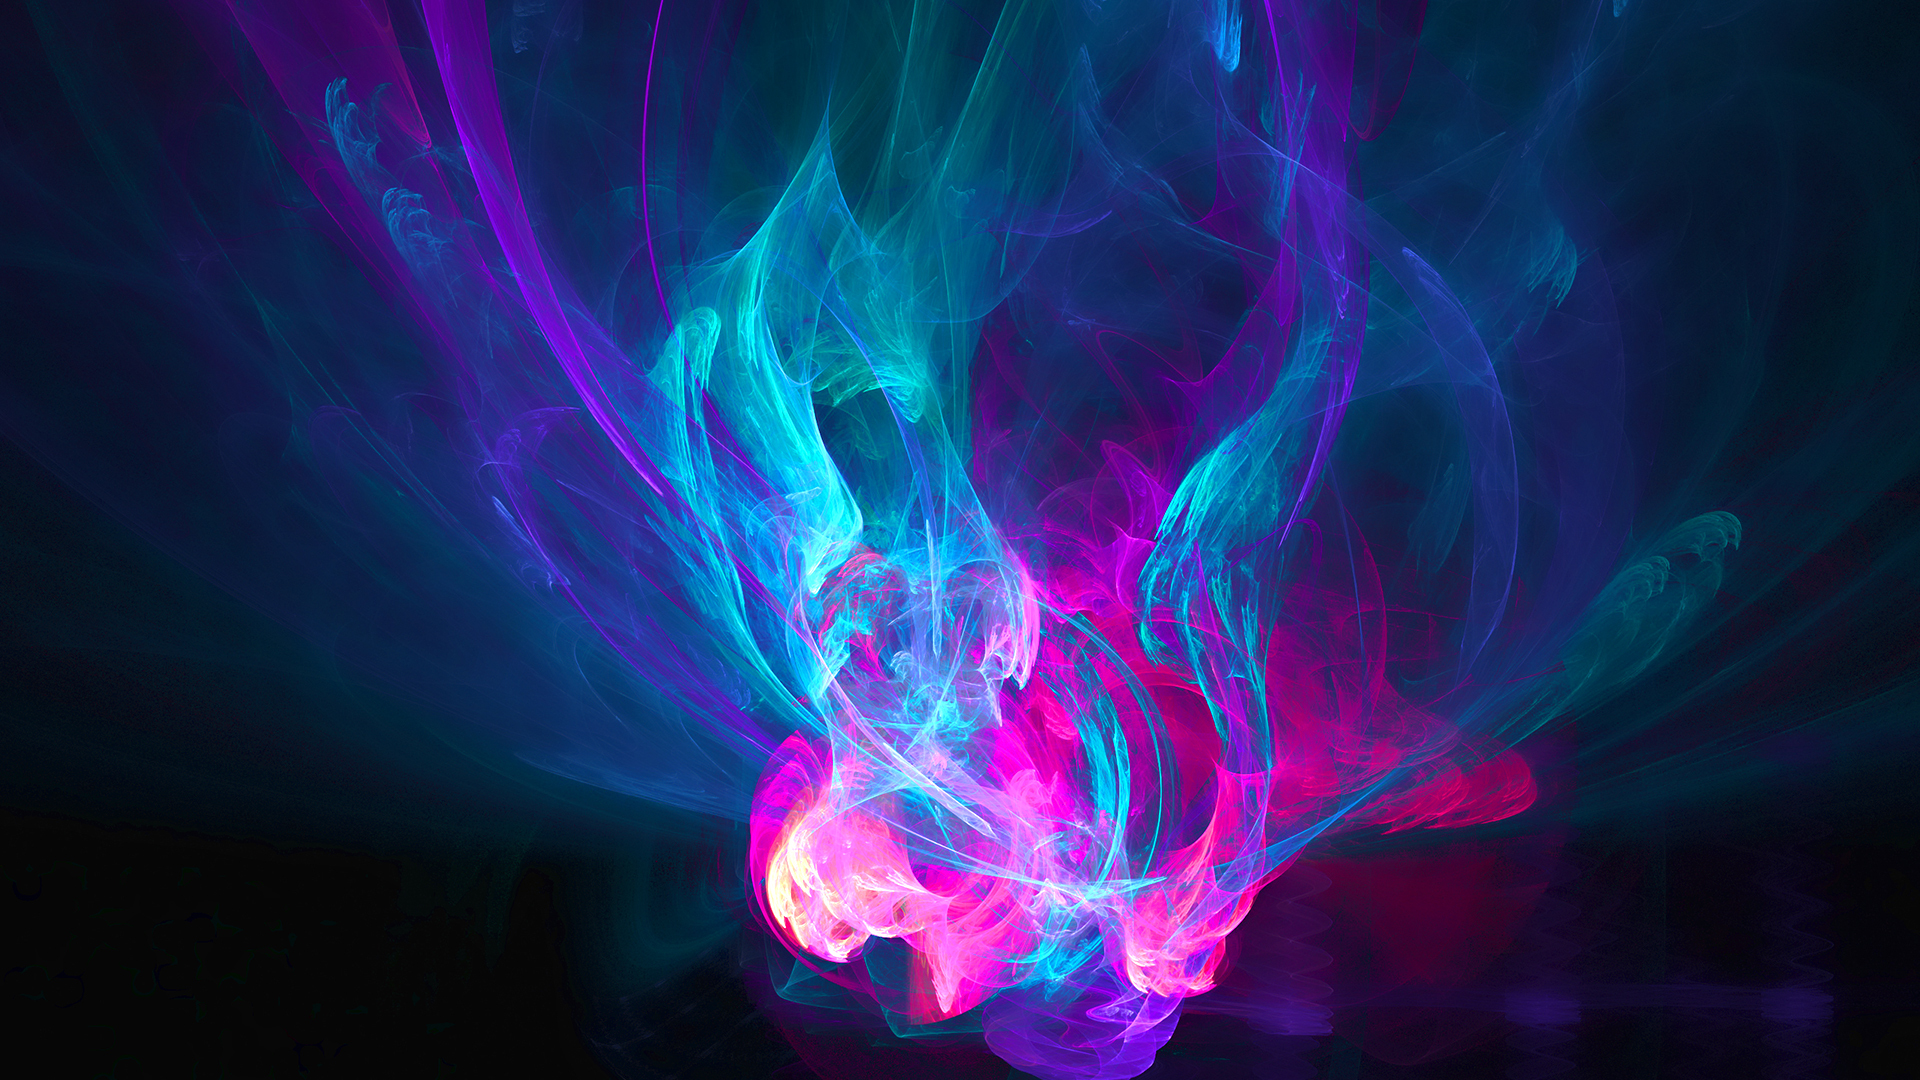 Wallpaper abstraction fire pink blue purple patterns wallpapers 1920x1080